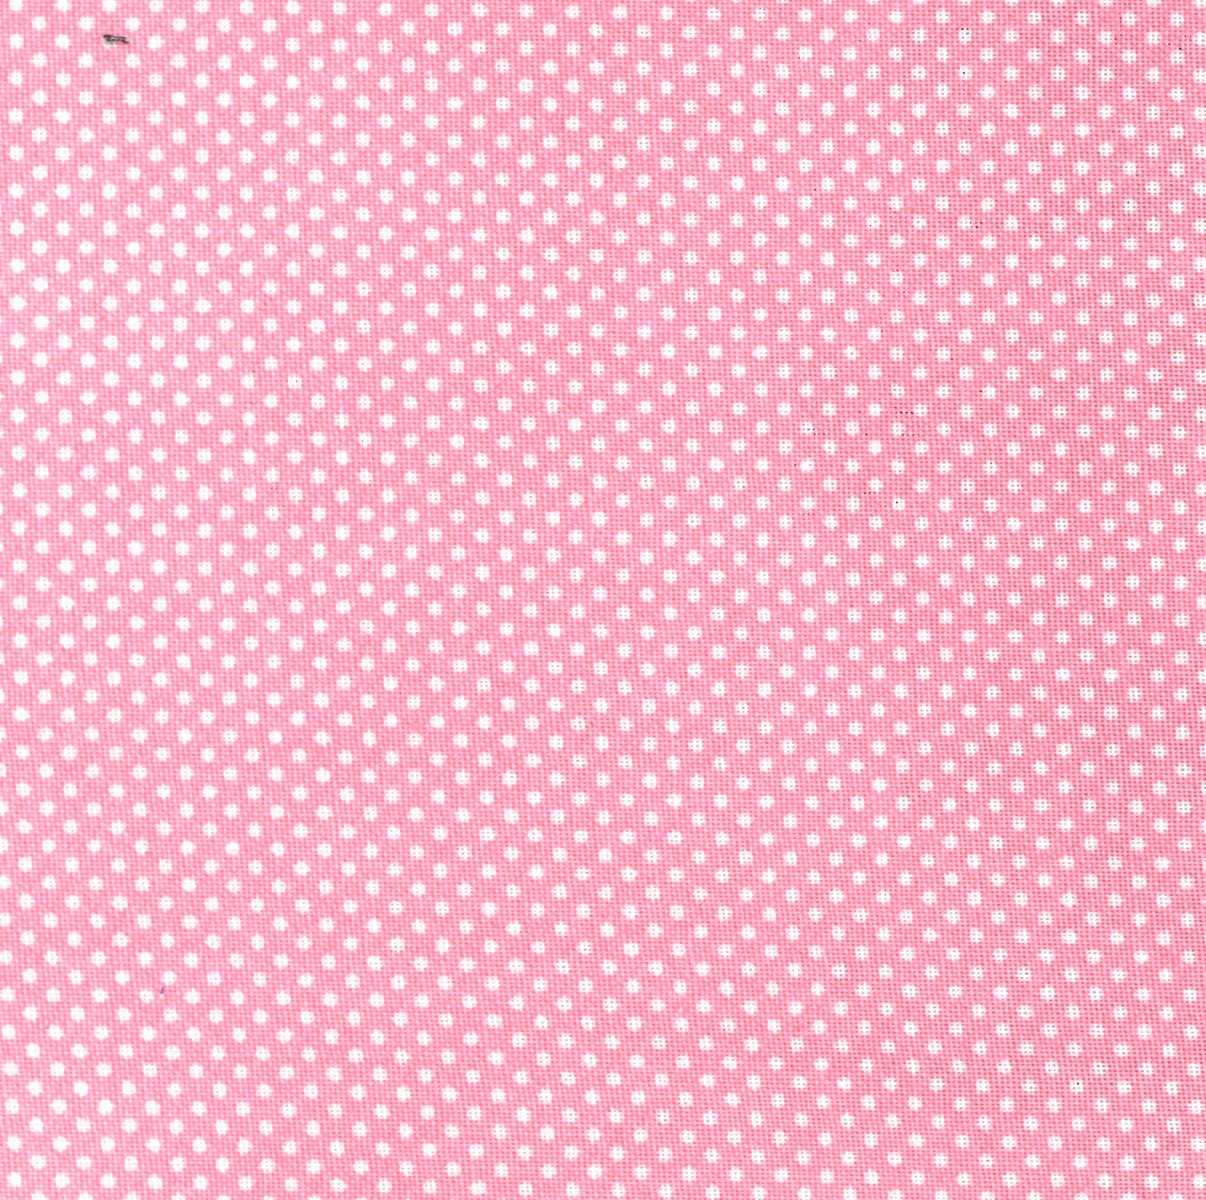 Micro Dots Pink/Wht